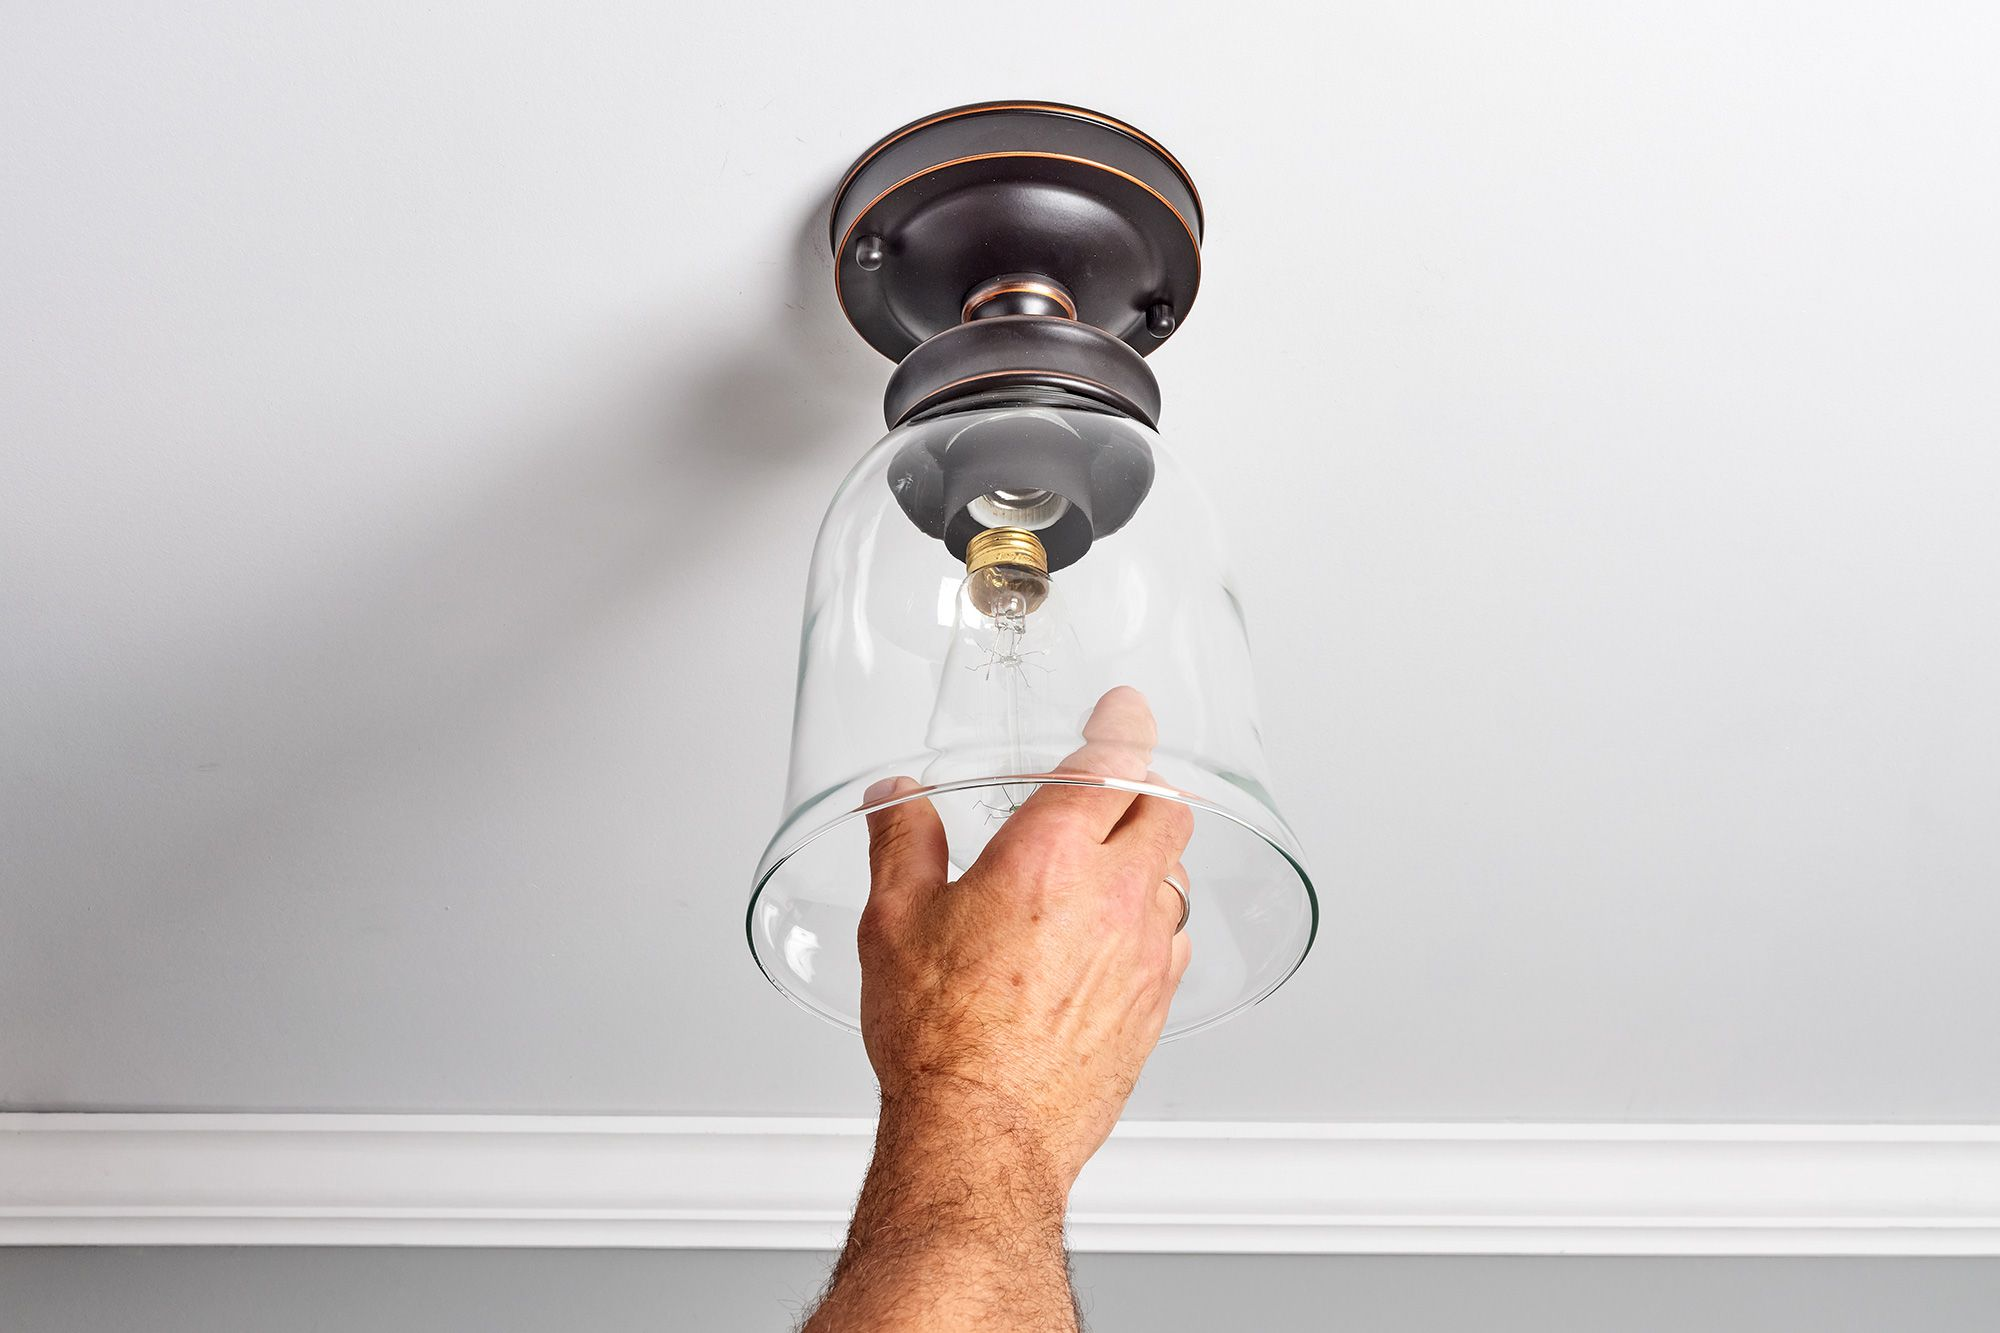 How To Change A Light Socket, How To Change A Chandelier Light Bulb